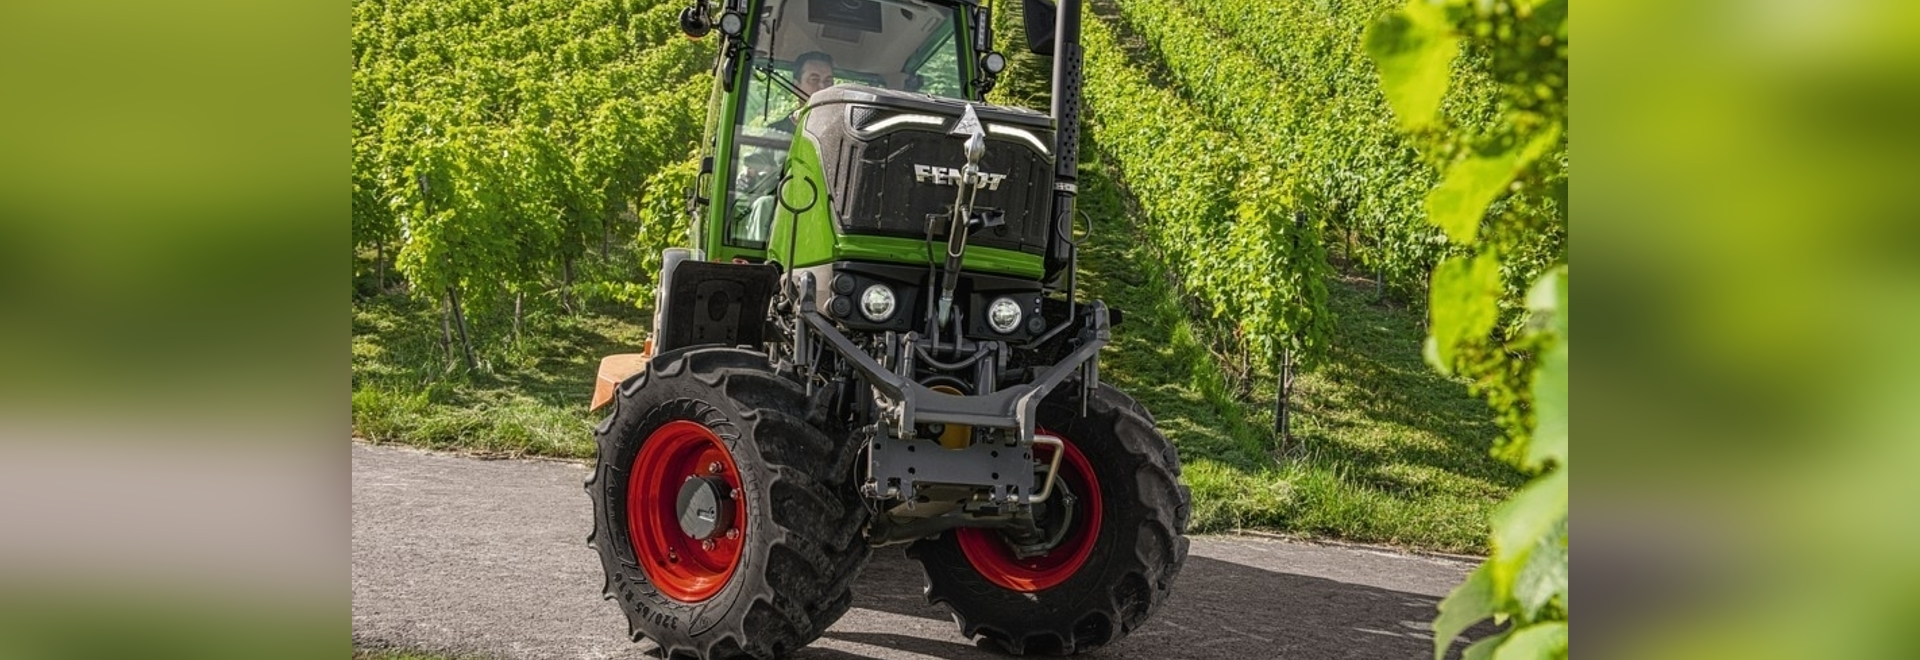 """Fendt tractor wins """"Tractor of the Year 2021 – Best of Specialised"""""""